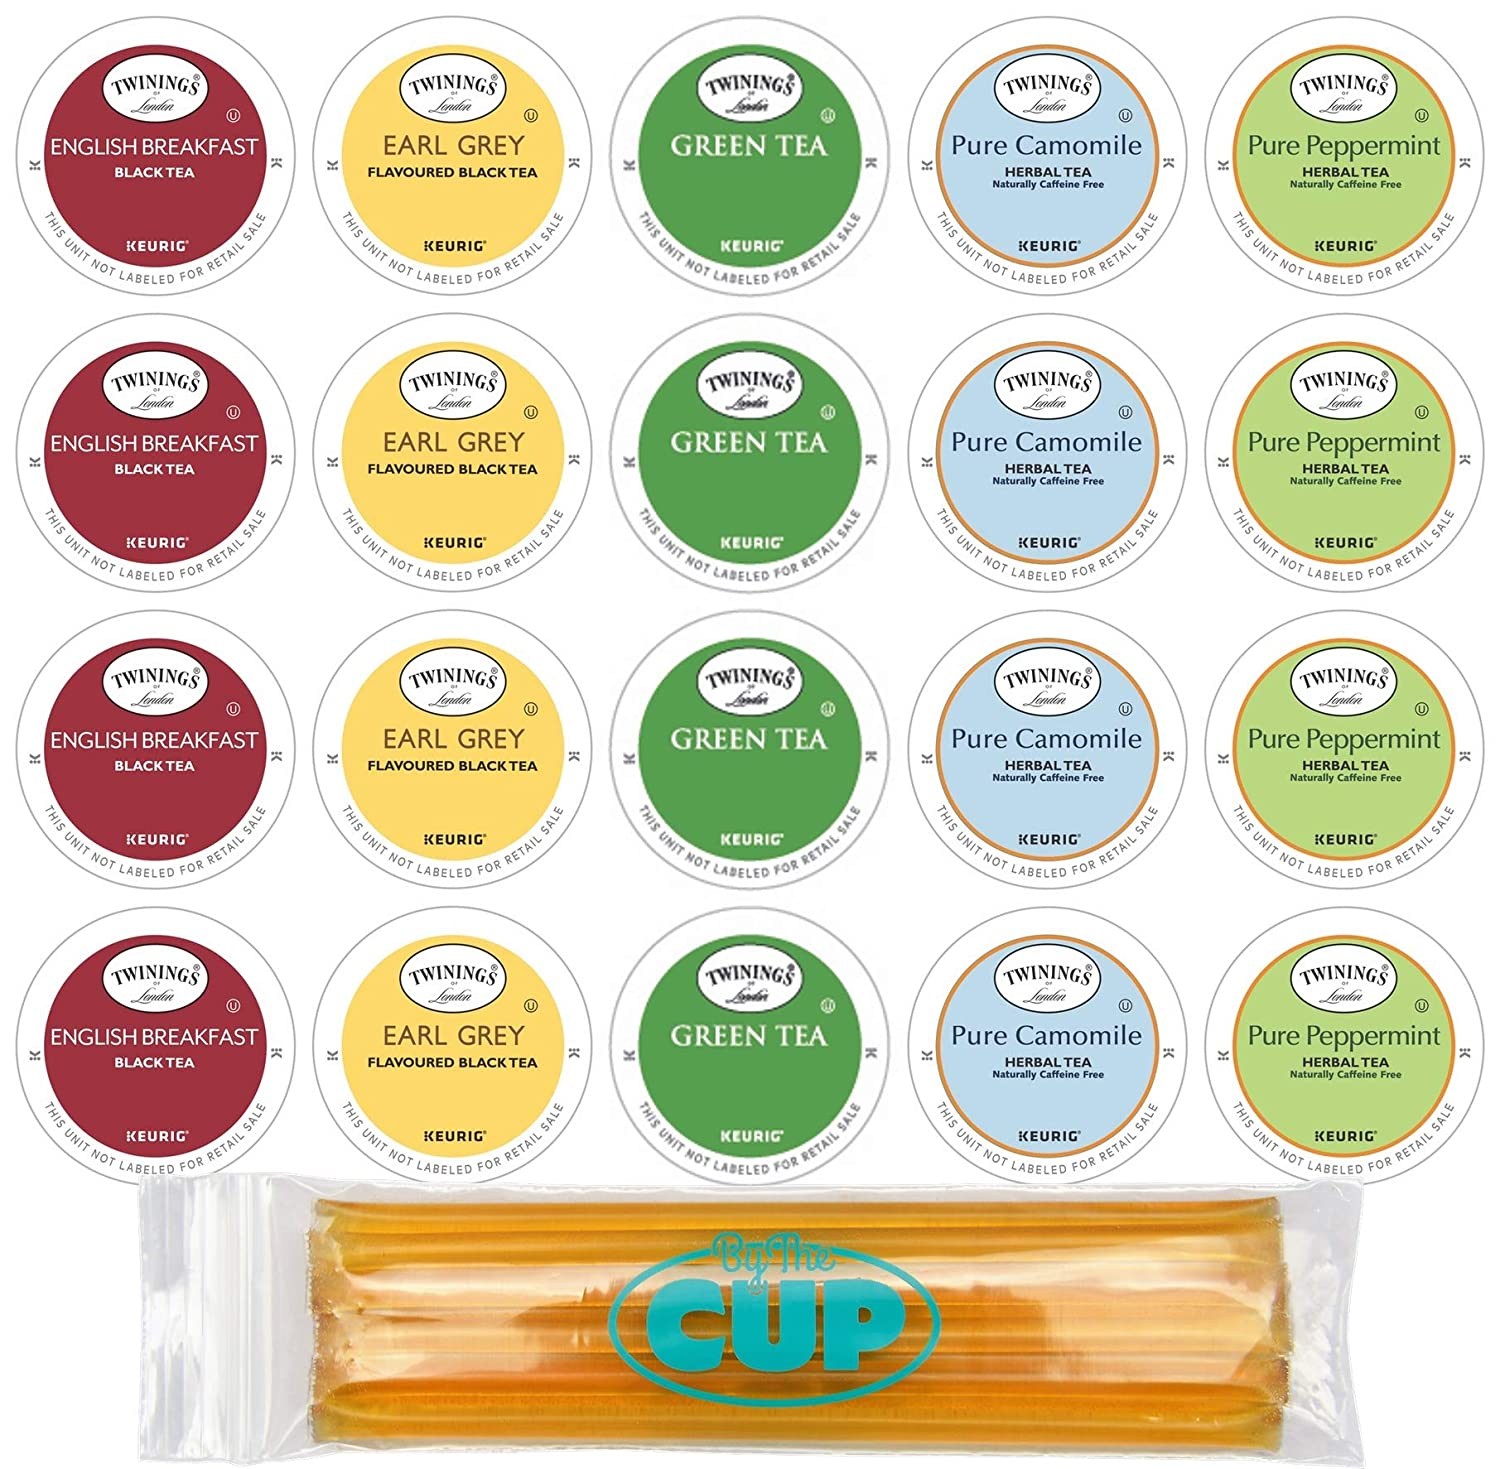 Twinings Tea Sampler Keurig K Cups Assortment 20 Count with 10 By The Cup Honey Sticks